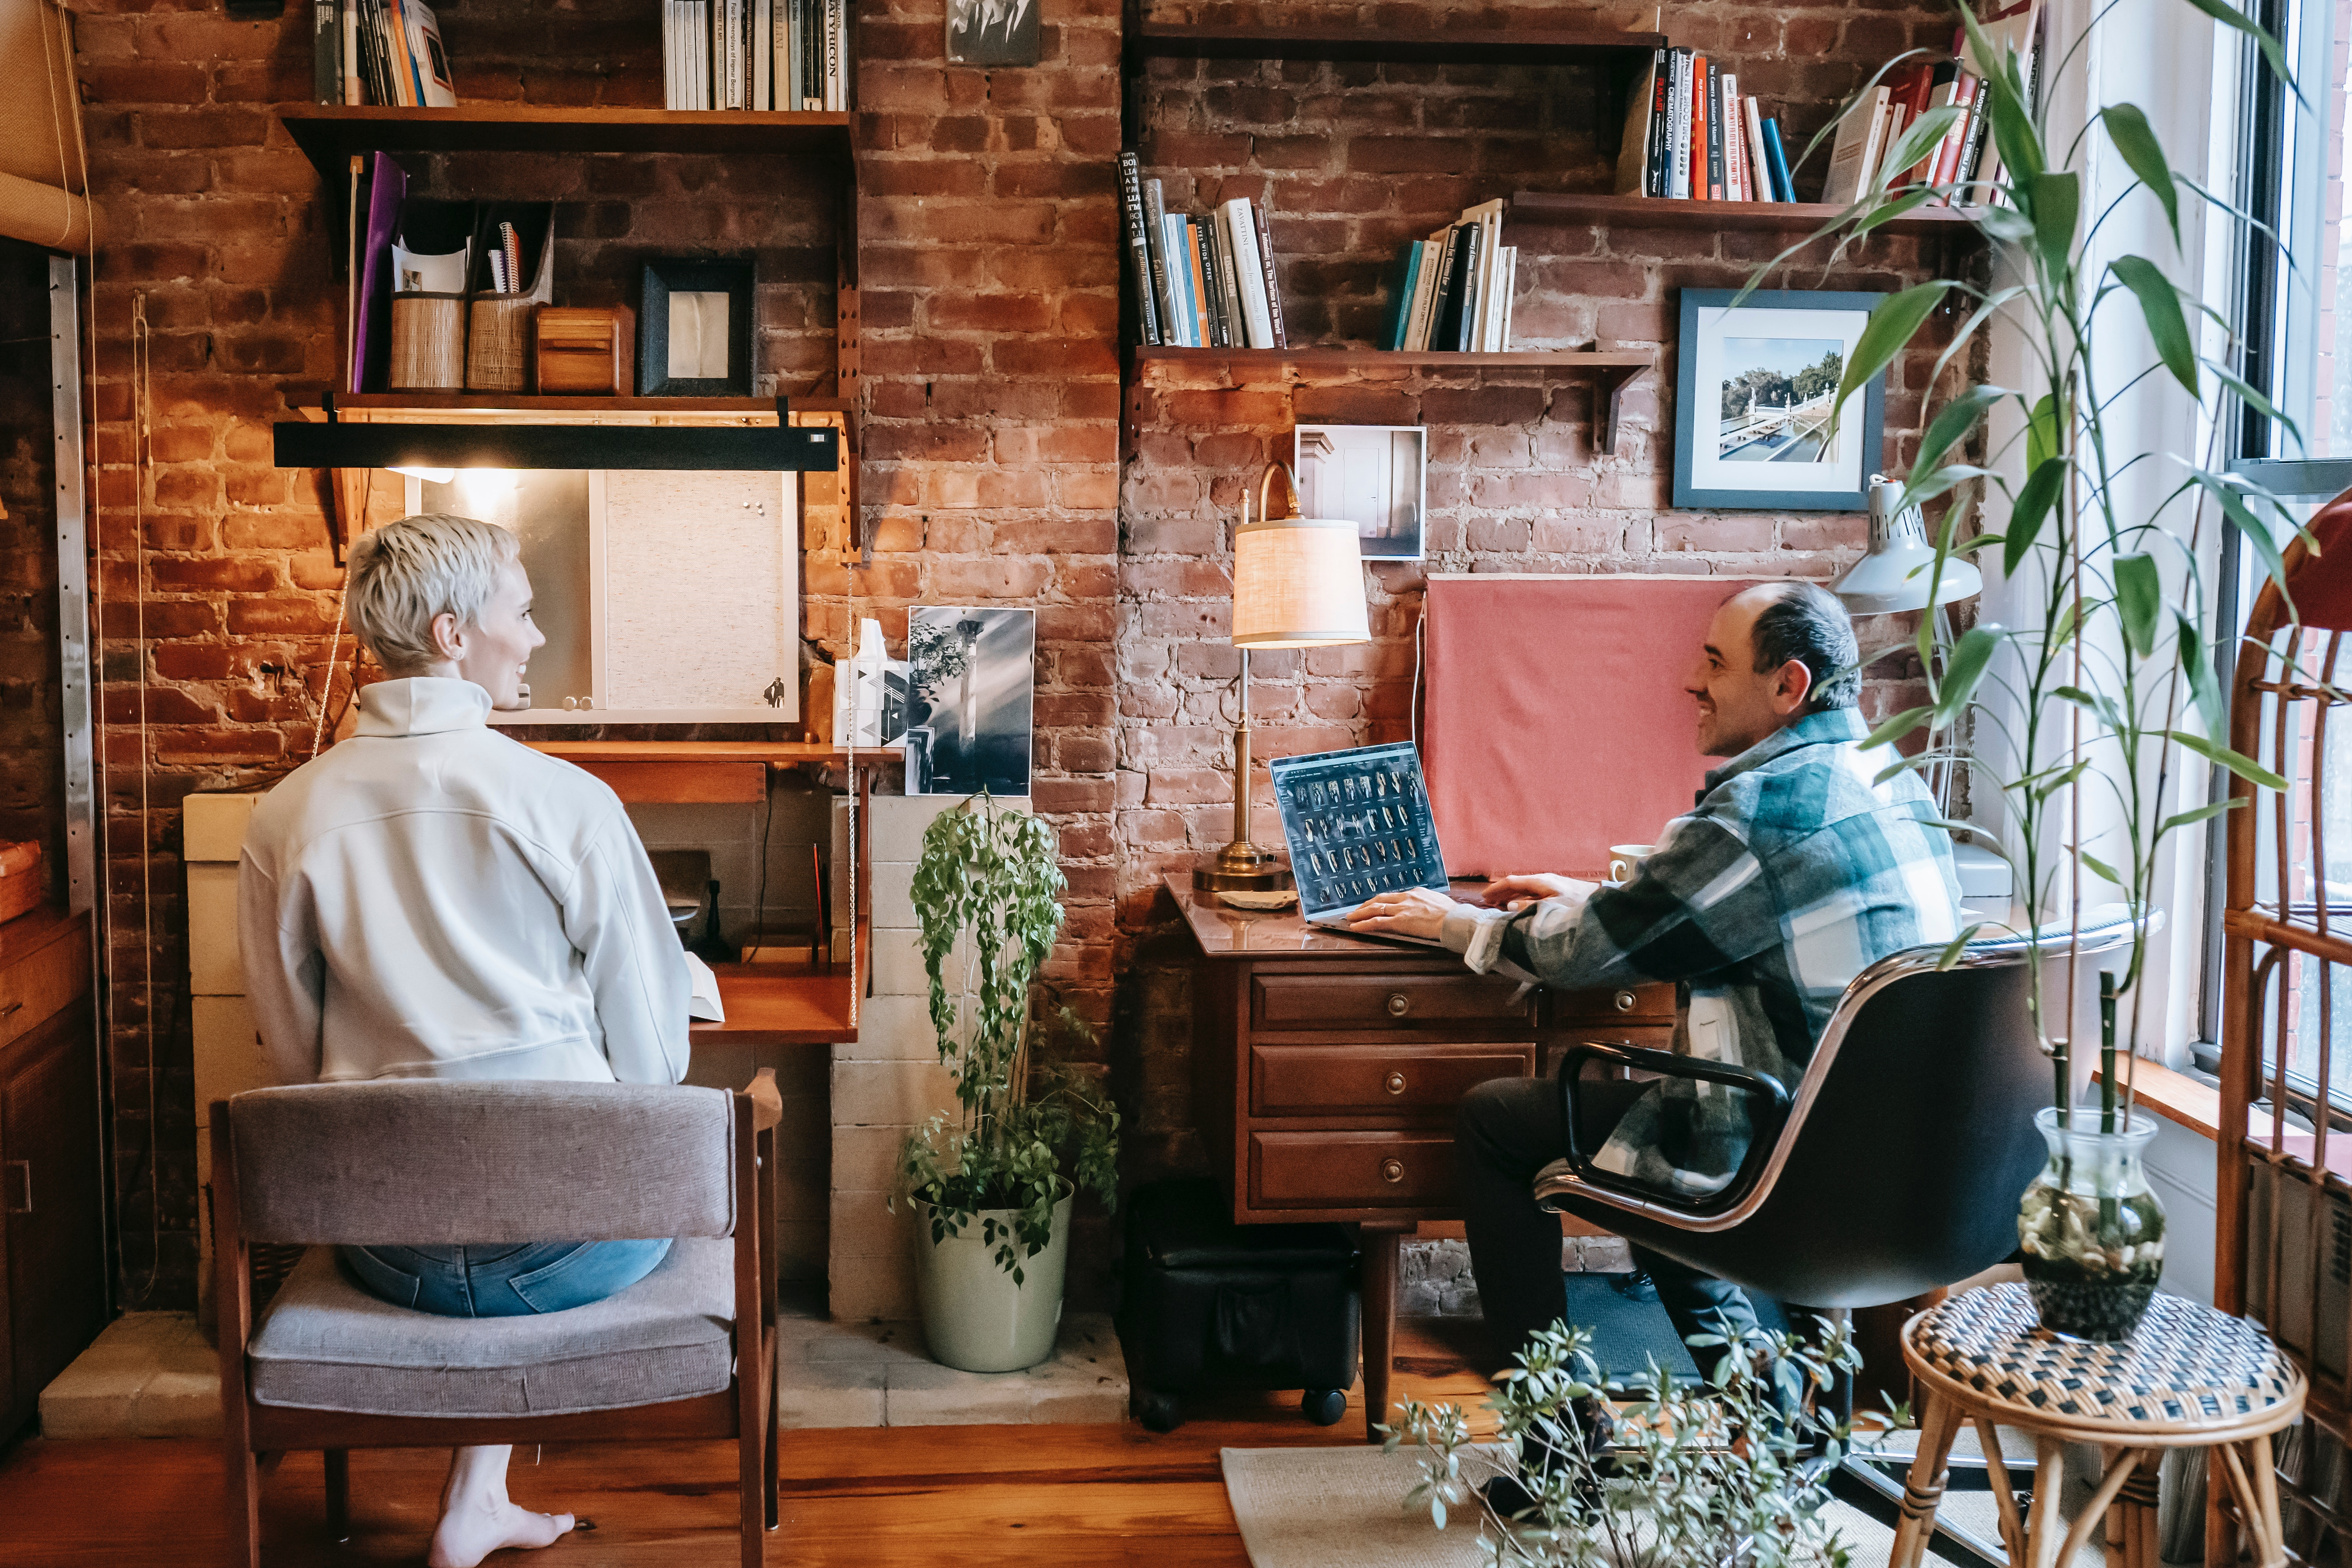 Two people sat at their desks in a home office